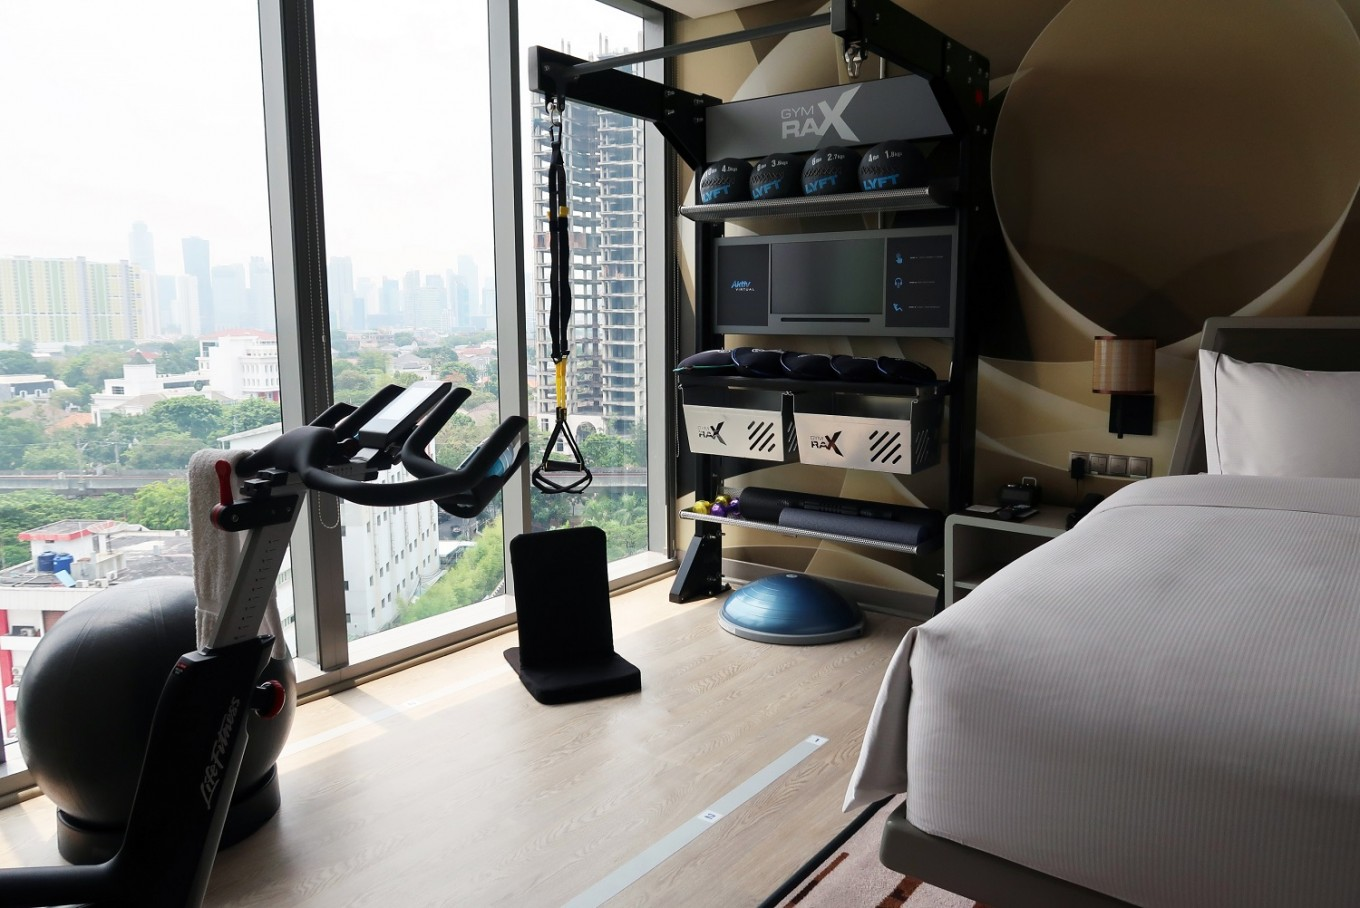 Feeling Lazy Jakarta Hotel Offers Fitness Equipment In Rooms News The Jakarta Post